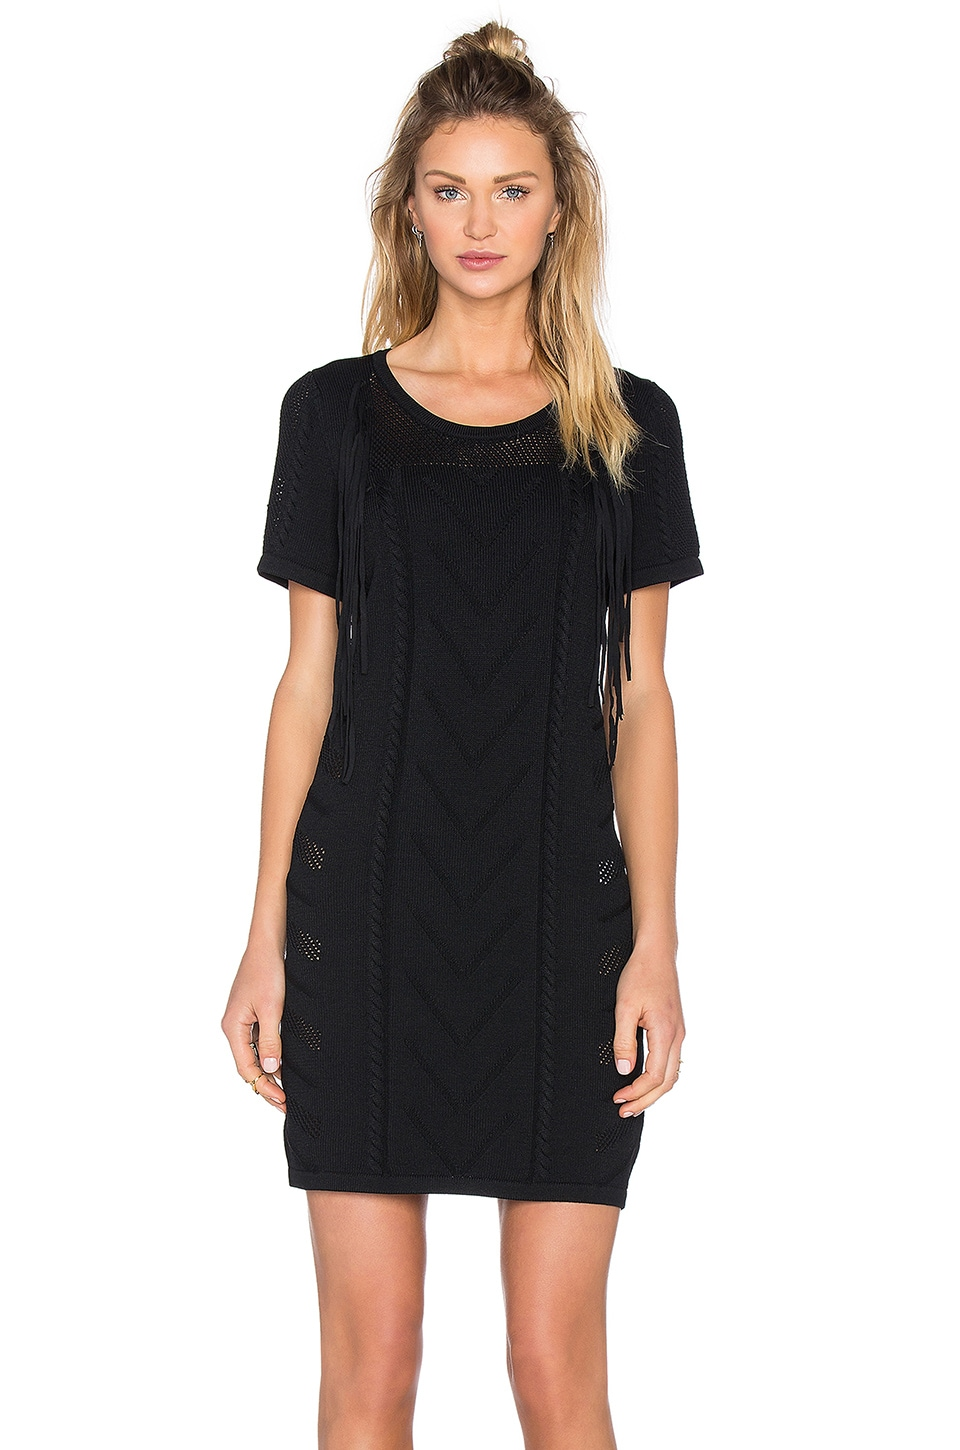 Fine Collection Fringe Sweater Dress in Black